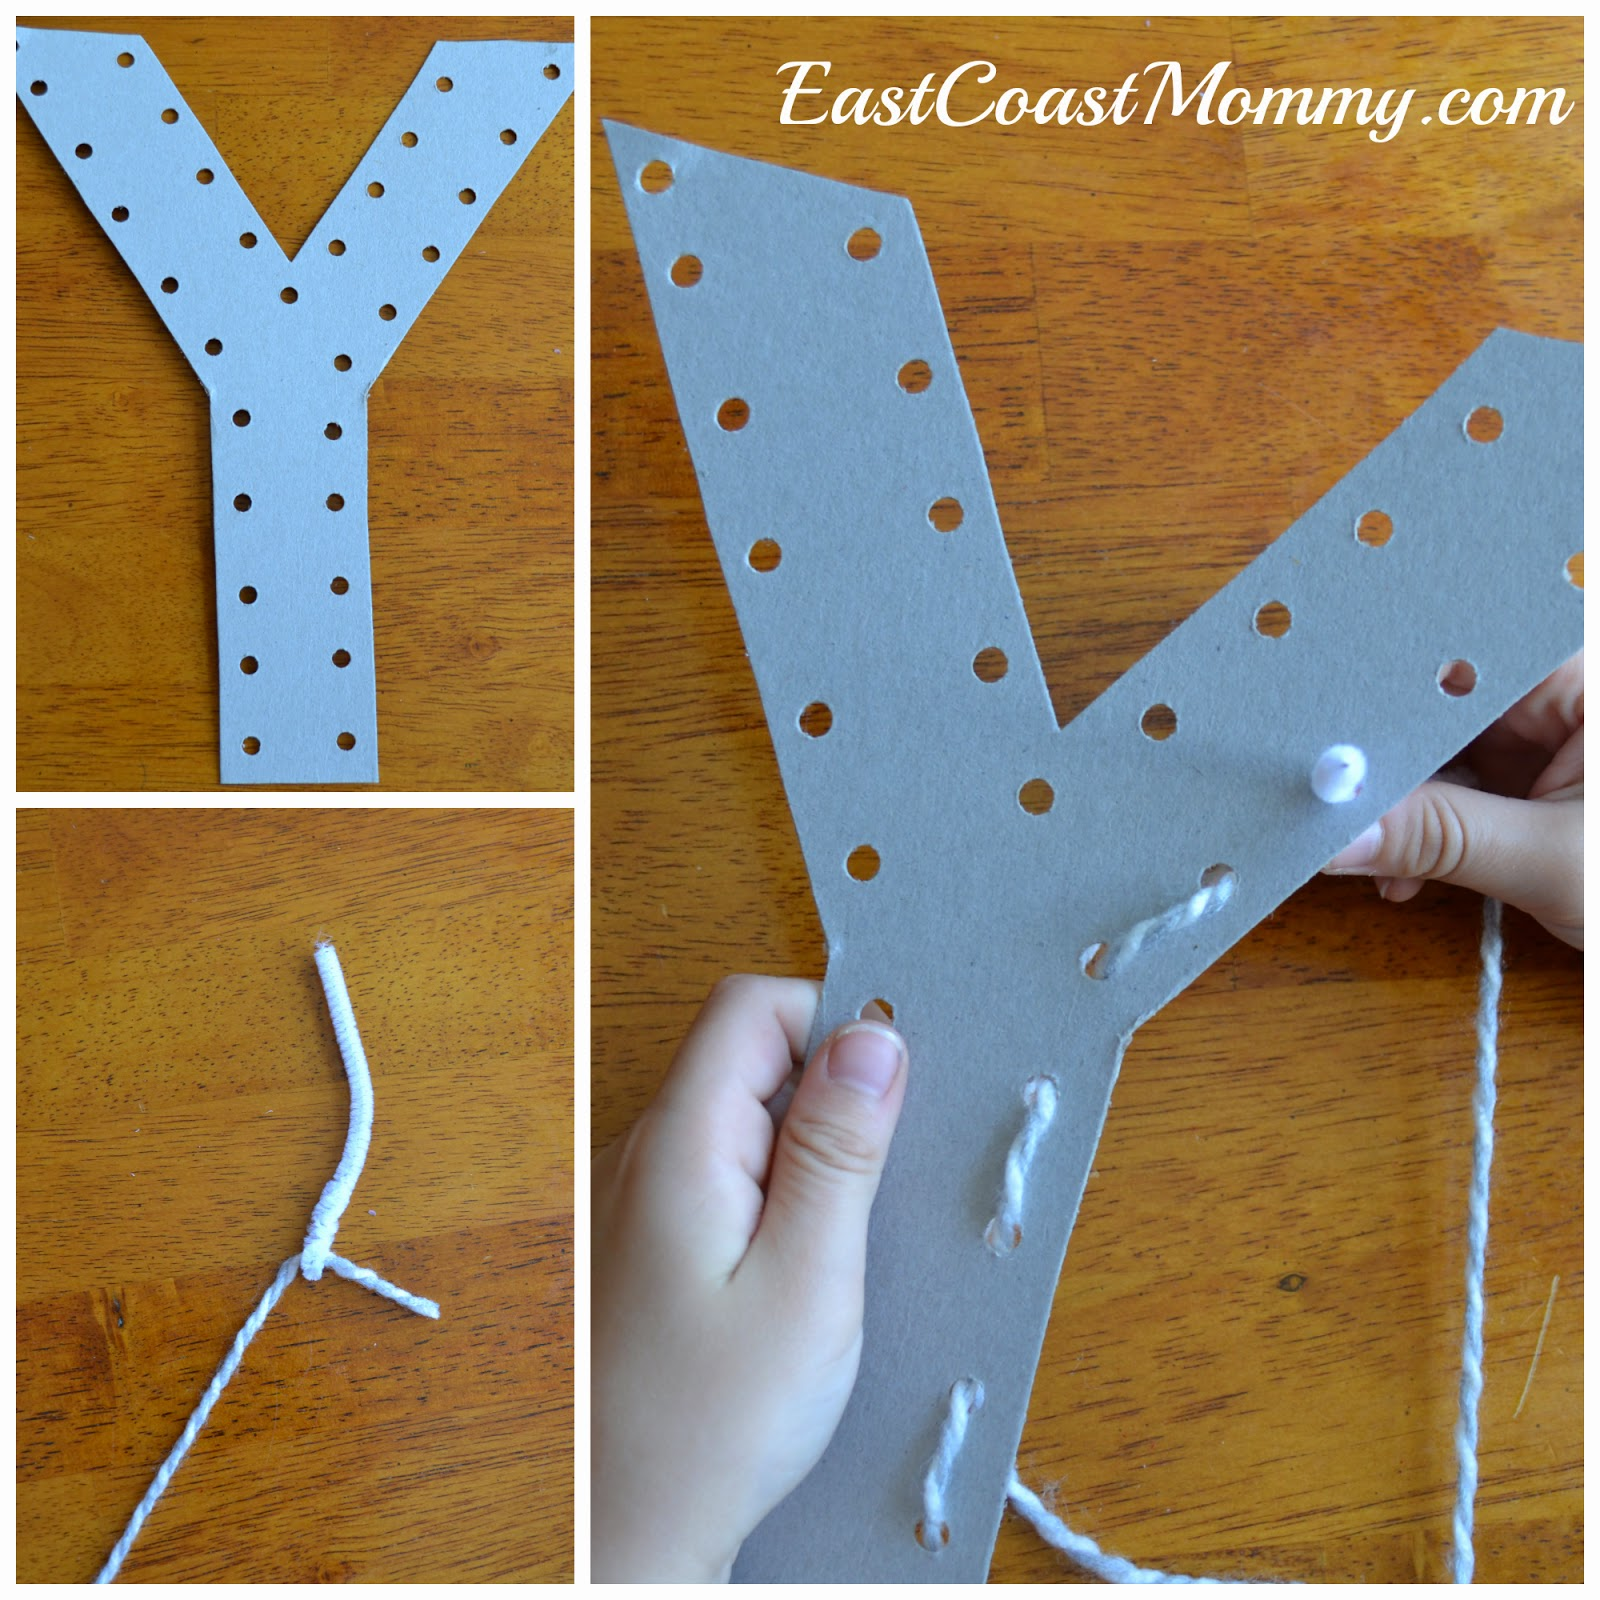 East Coast Mommy: Alphabet Crafts - Letter Y